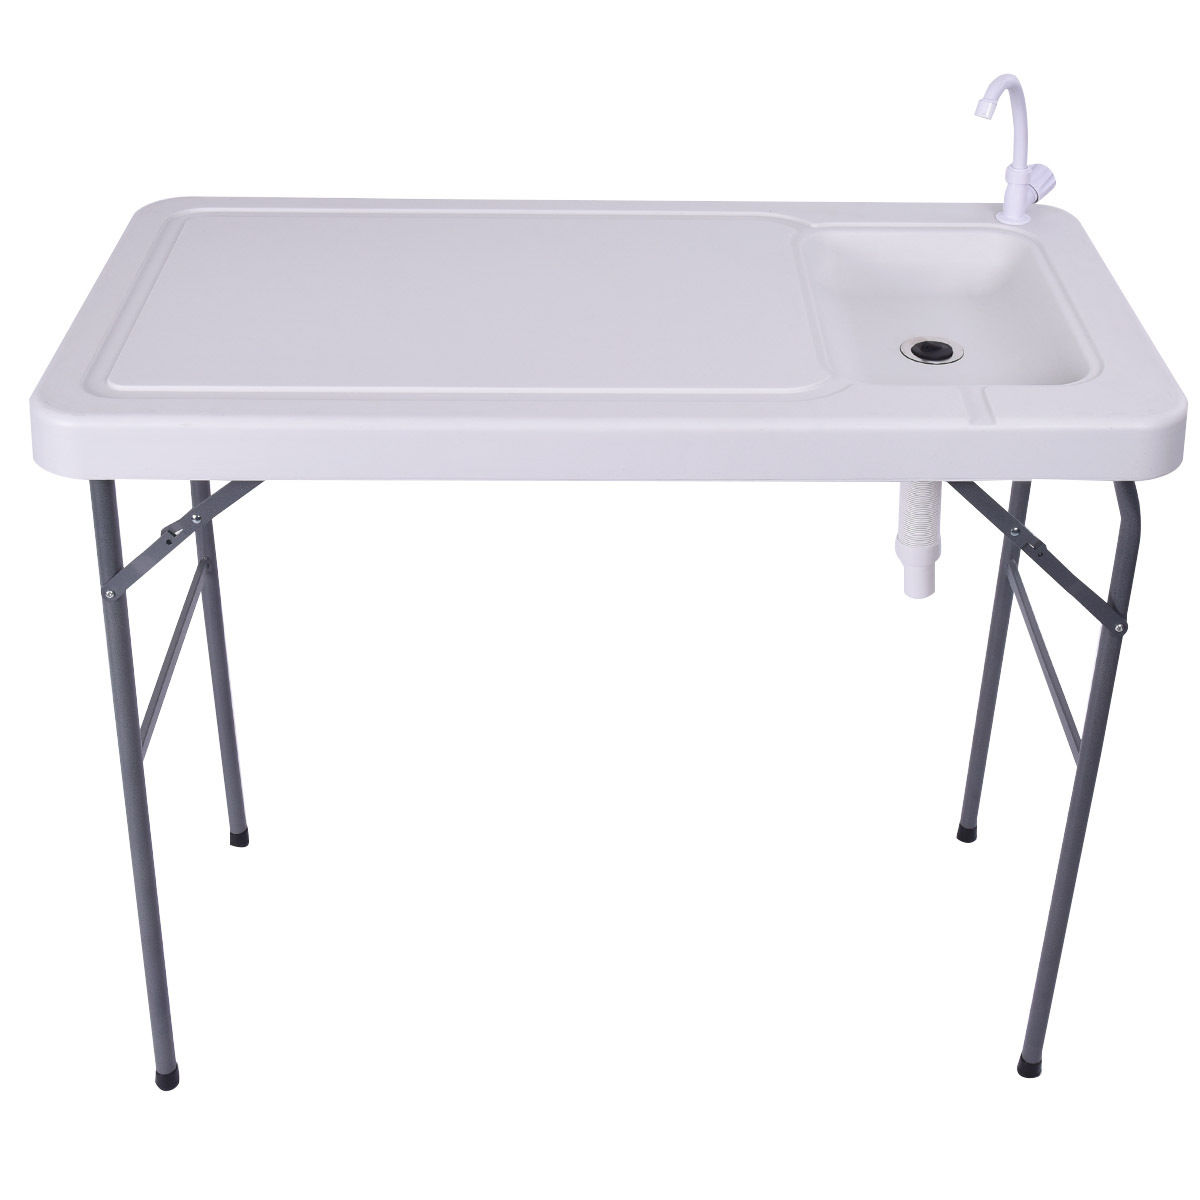 Folding Portable Hunting Cleaning Cutting Camping Fish Table